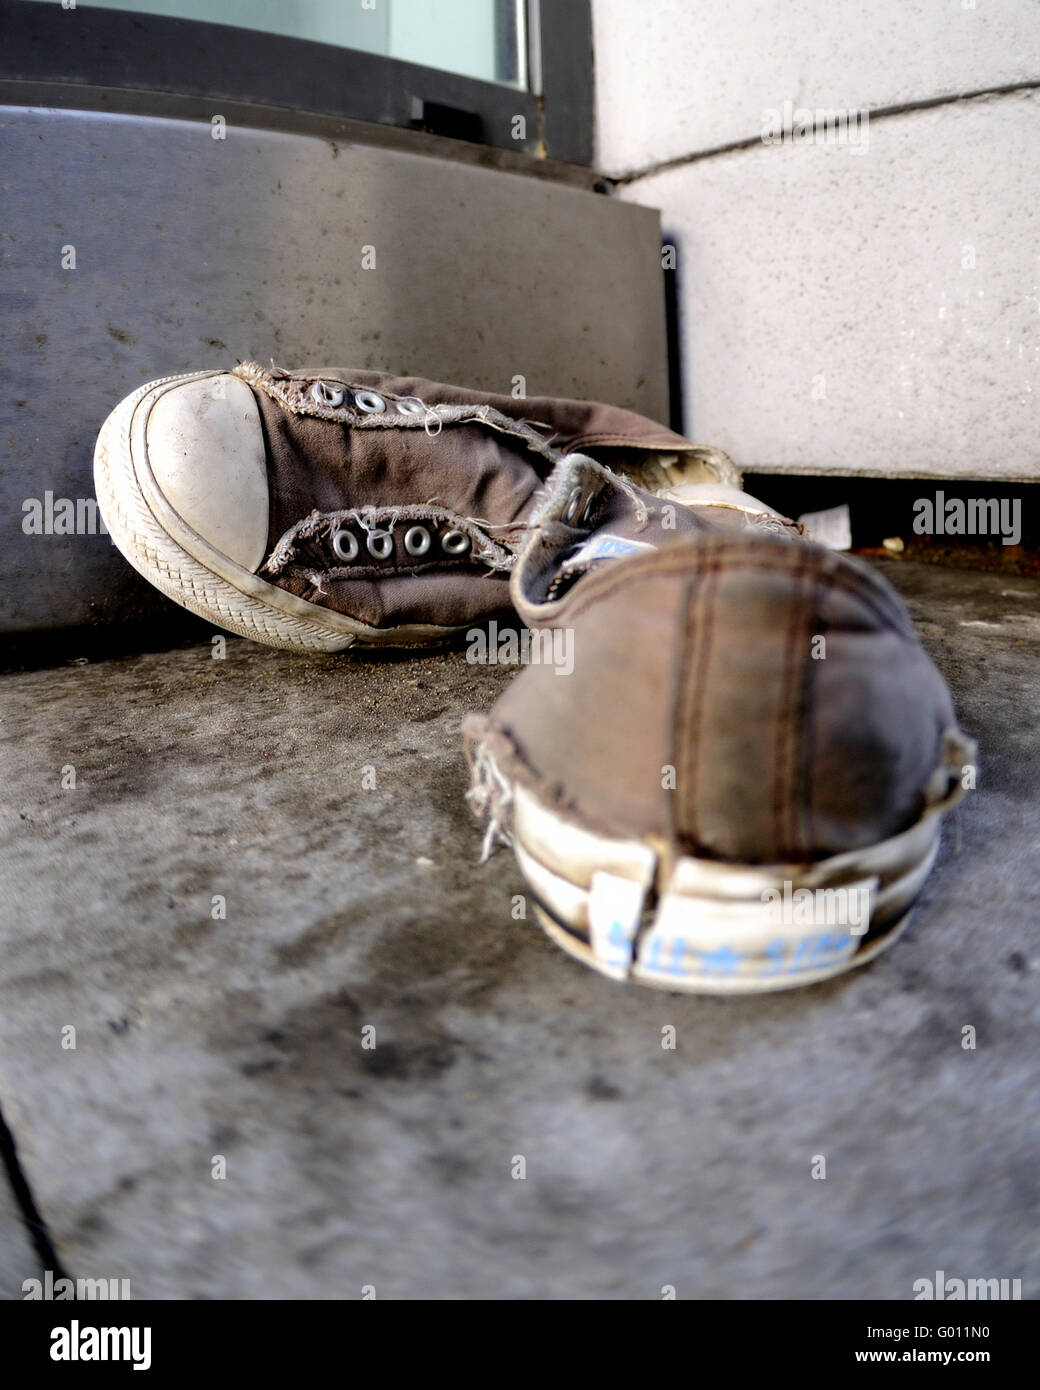 Shoes worn off - Stock Image